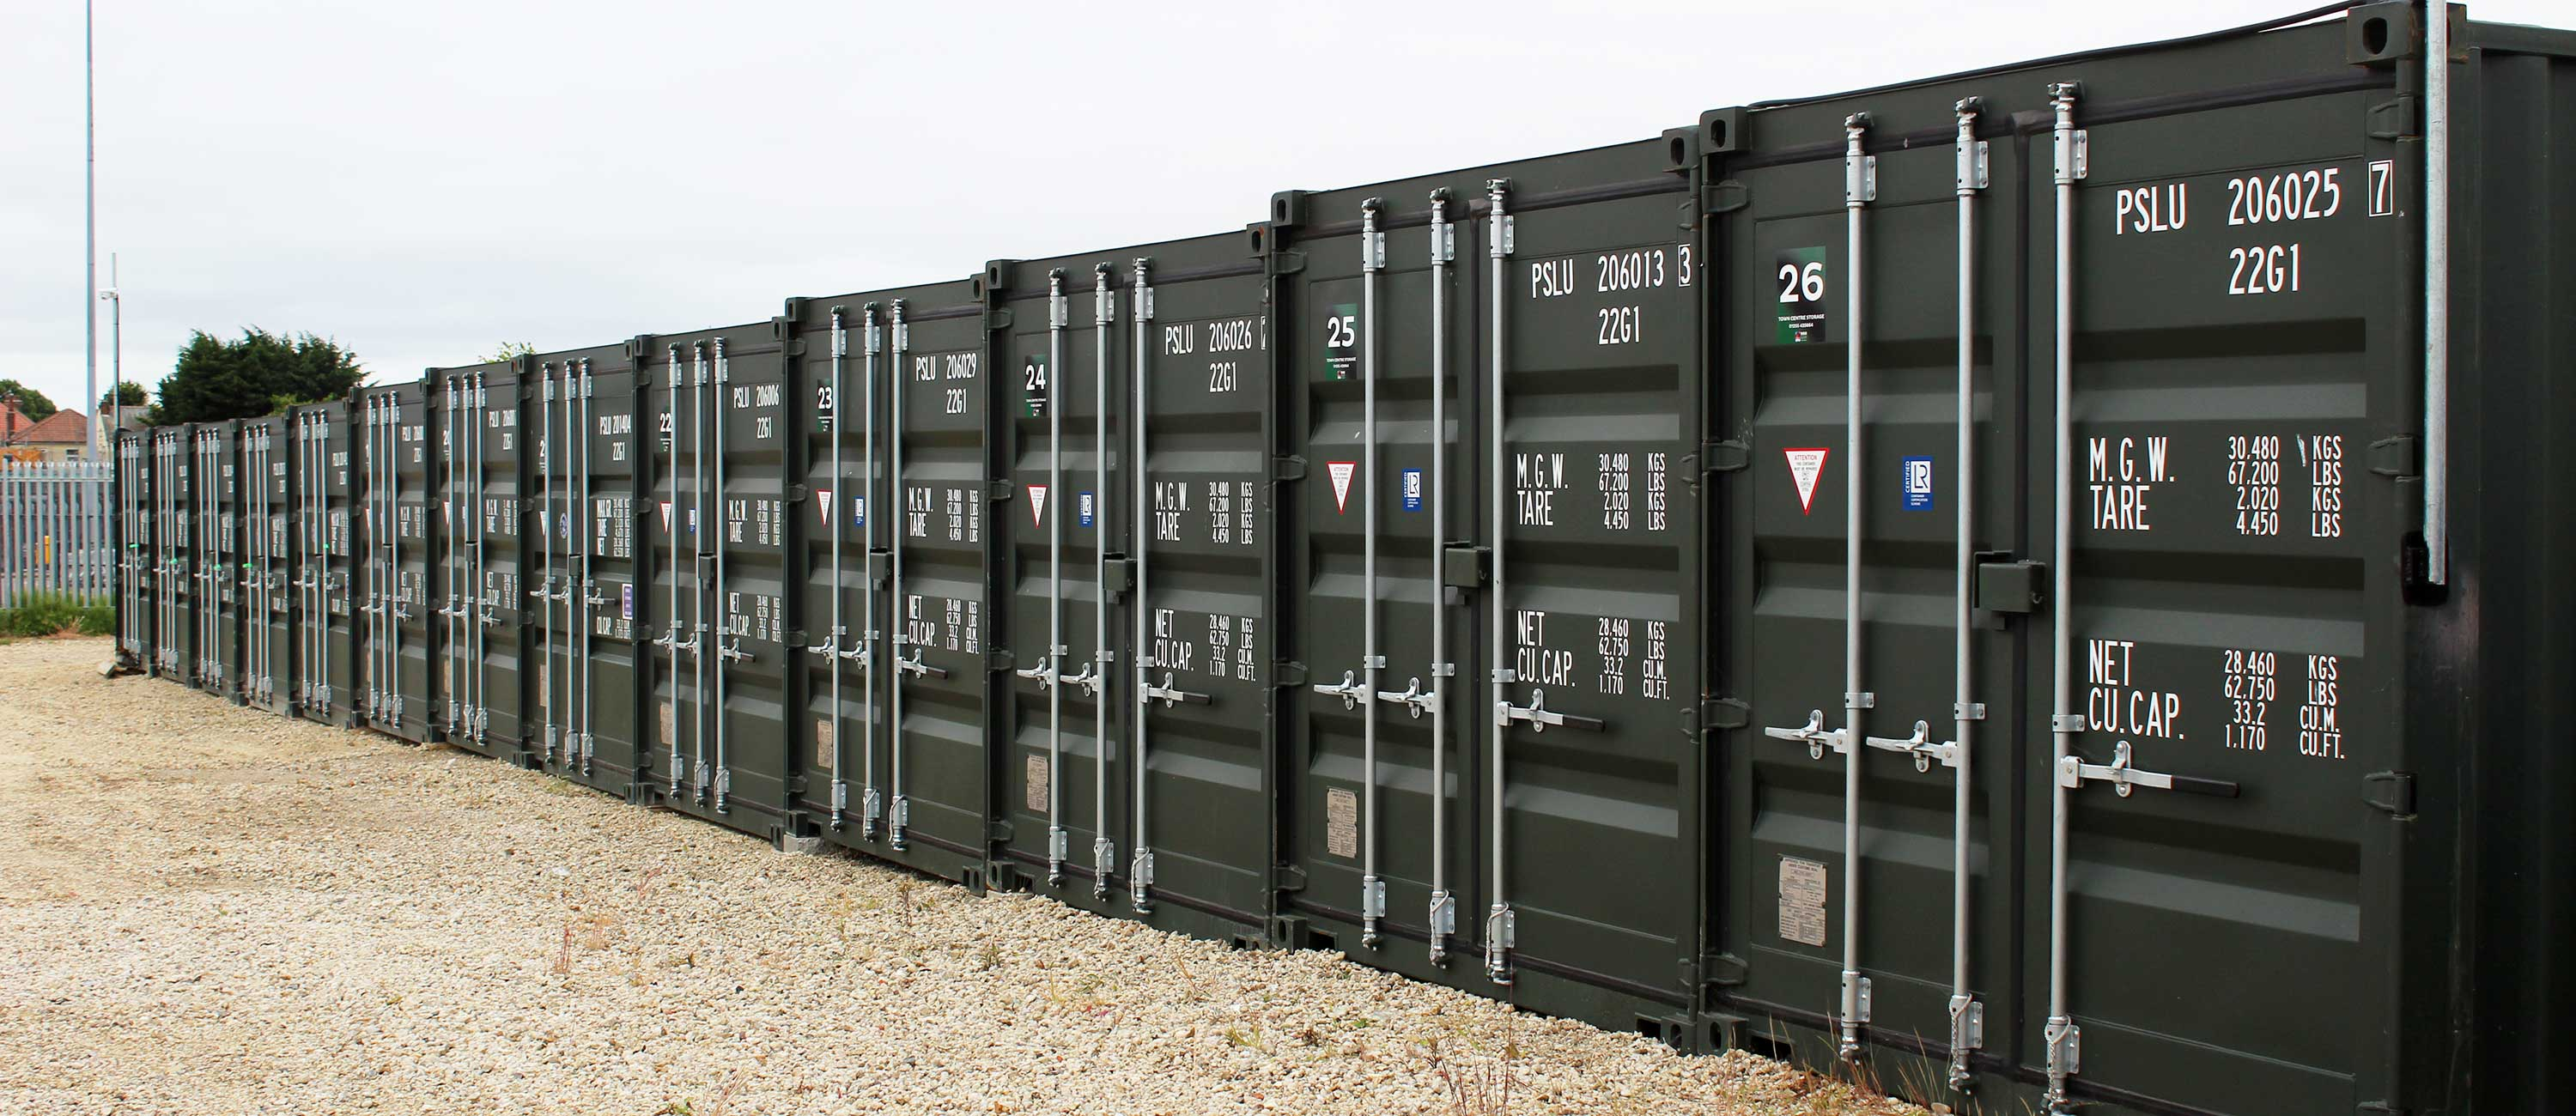 Self Storage Containers at SB Developments in Clacton, Essex